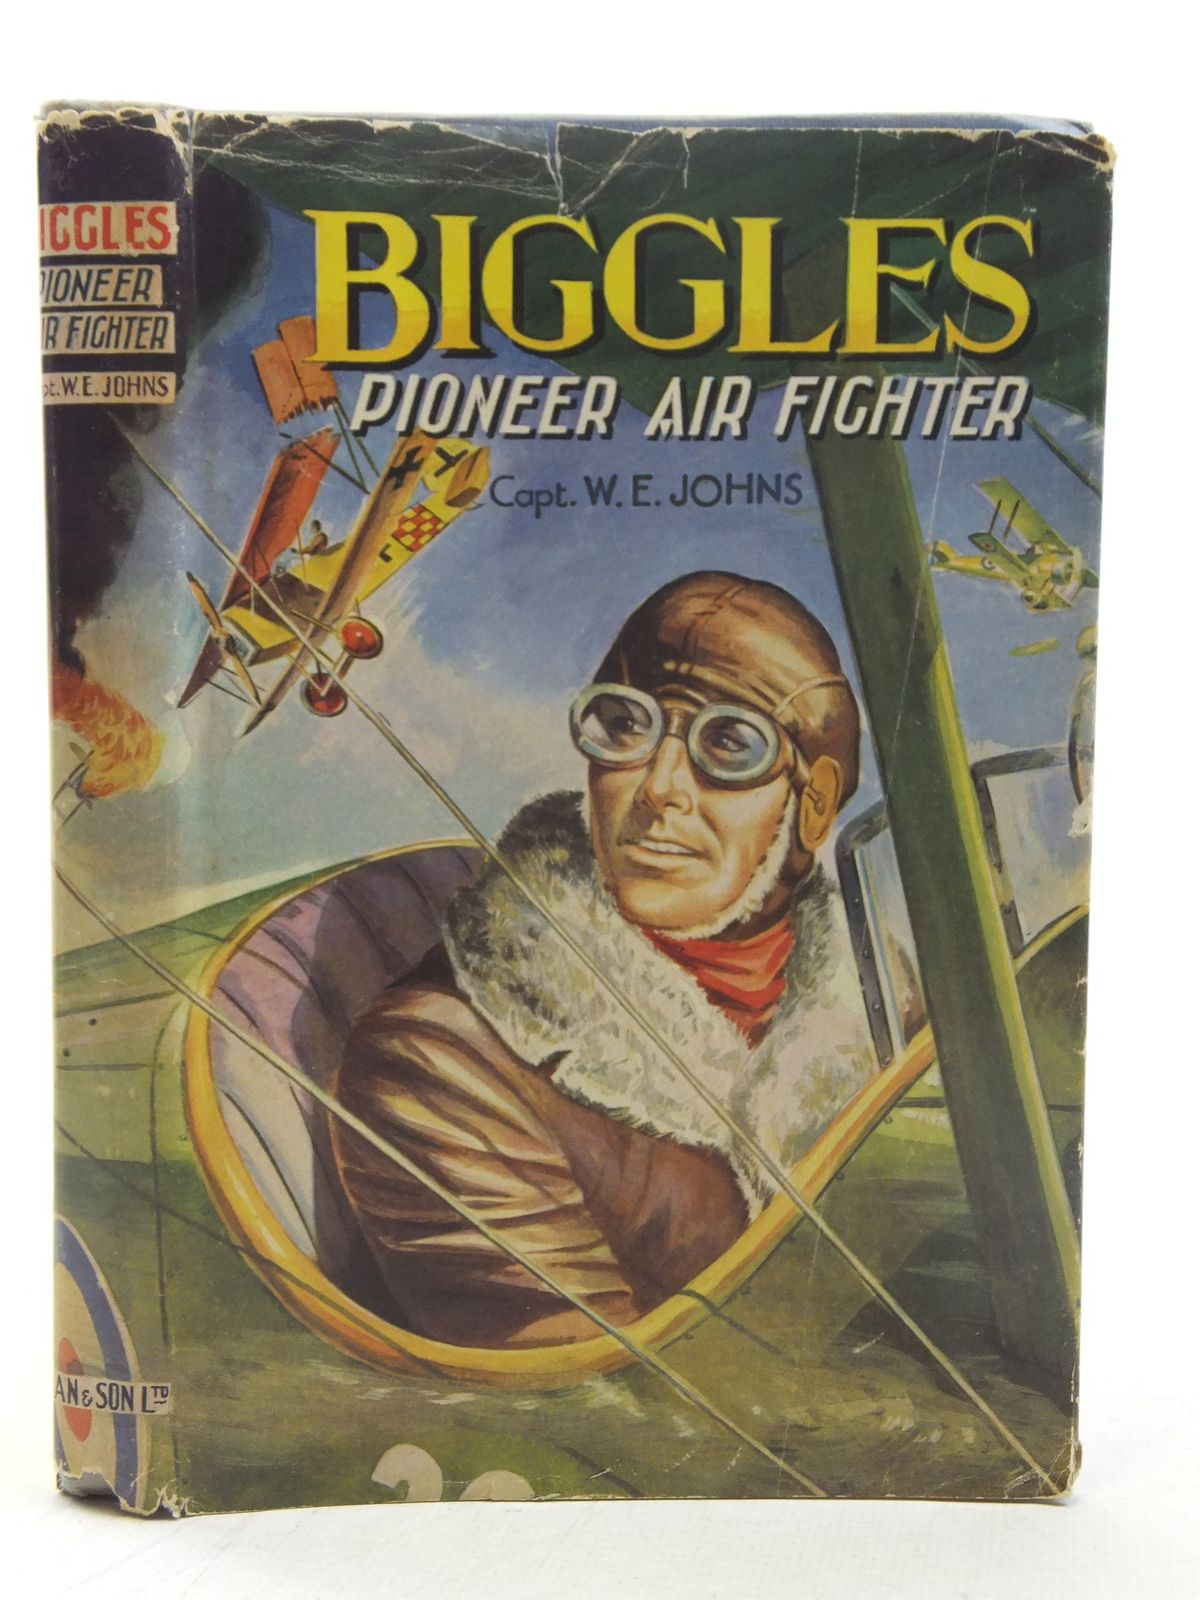 Photo of BIGGLES PIONEER AIR FIGHTER written by Johns, W.E. published by Dean & Son Ltd. (STOCK CODE: 2117613)  for sale by Stella & Rose's Books